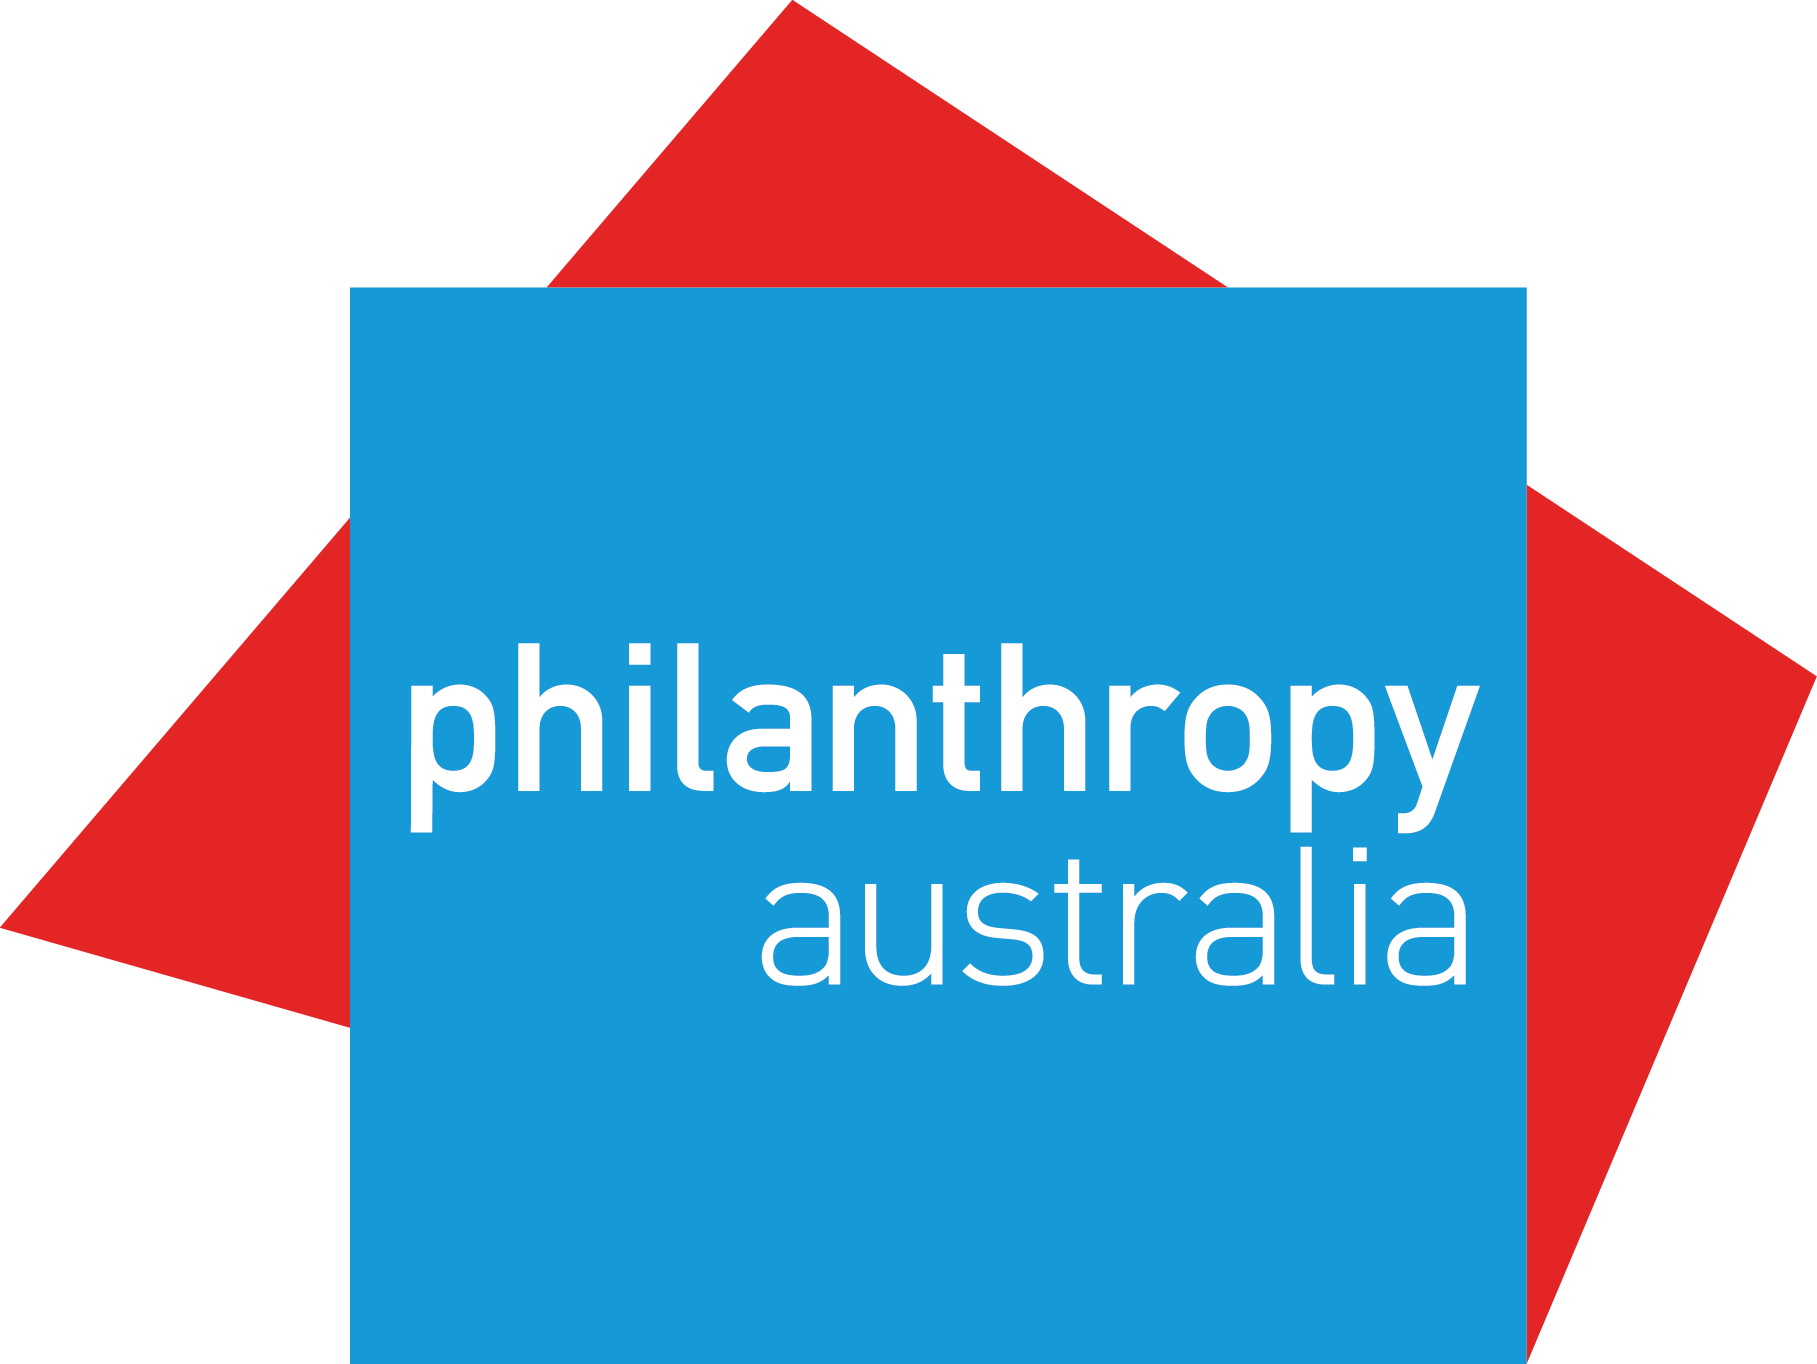 Profile of Philanthropy Australia